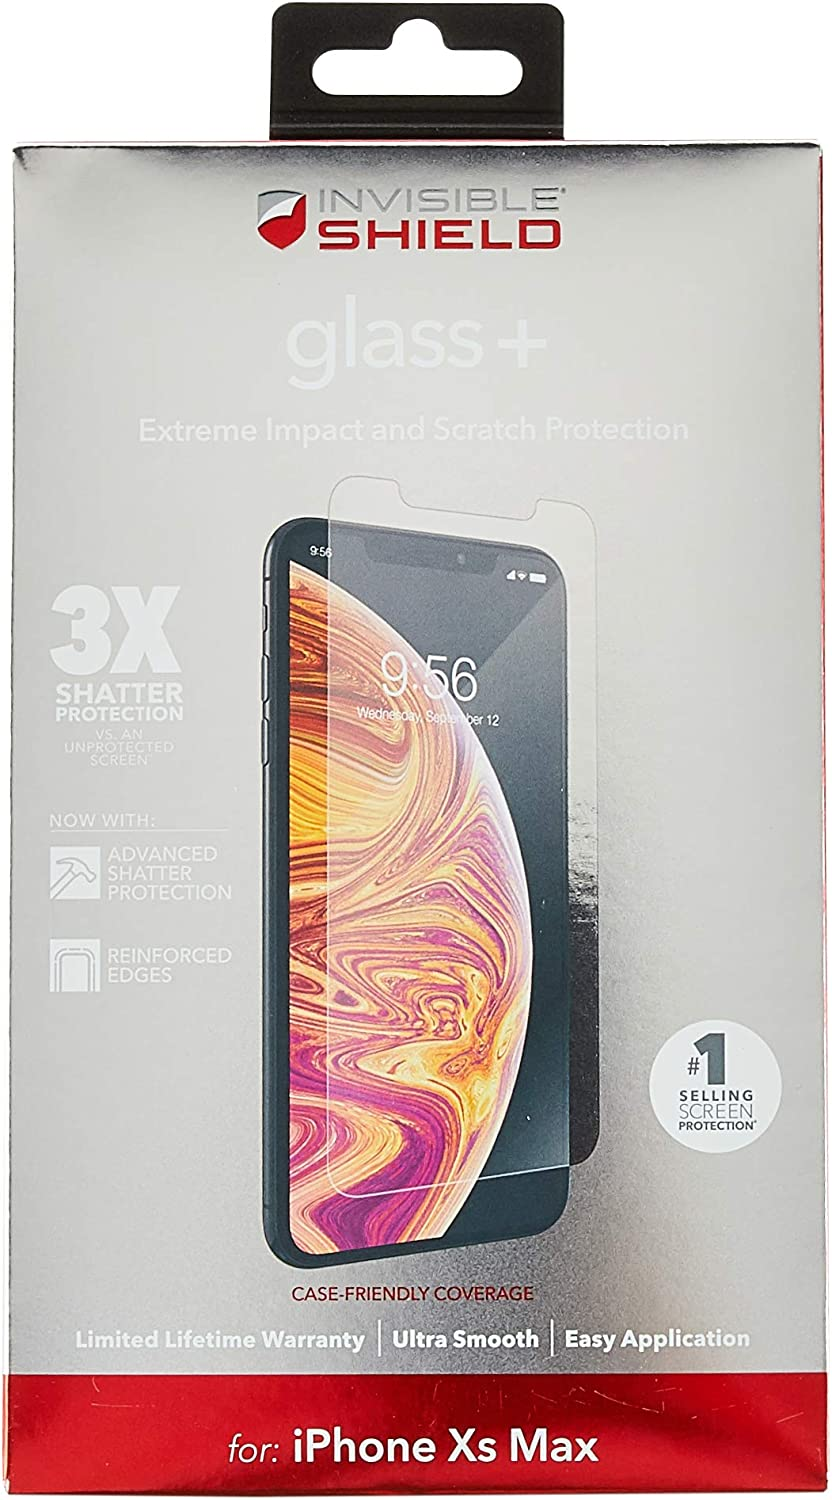 ZAGG InvisibleShield Glass XS 3X Impact Protection iPhone X Privacy Screen Protector for Apple